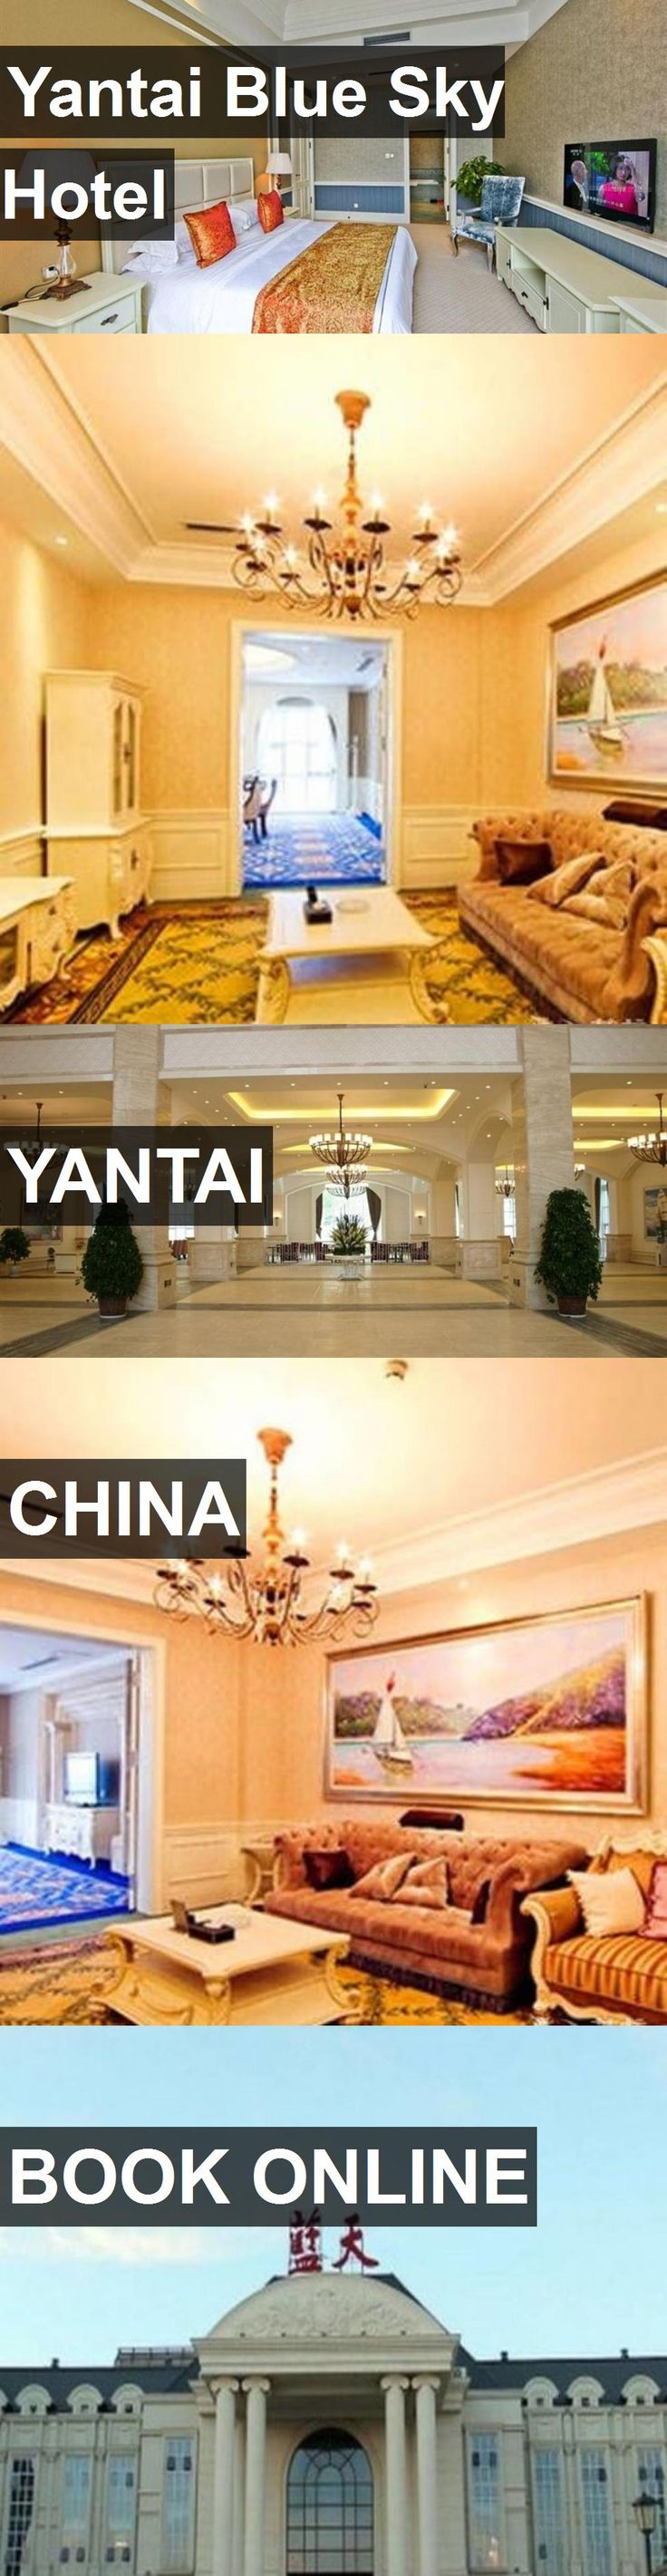 Hotel Yantai Blue Sky Hotel in Yantai, China. For more information, photos, reviews and best prices please follow the link. #China #Yantai #YantaiBlueSkyHotel #hotel #travel #vacation